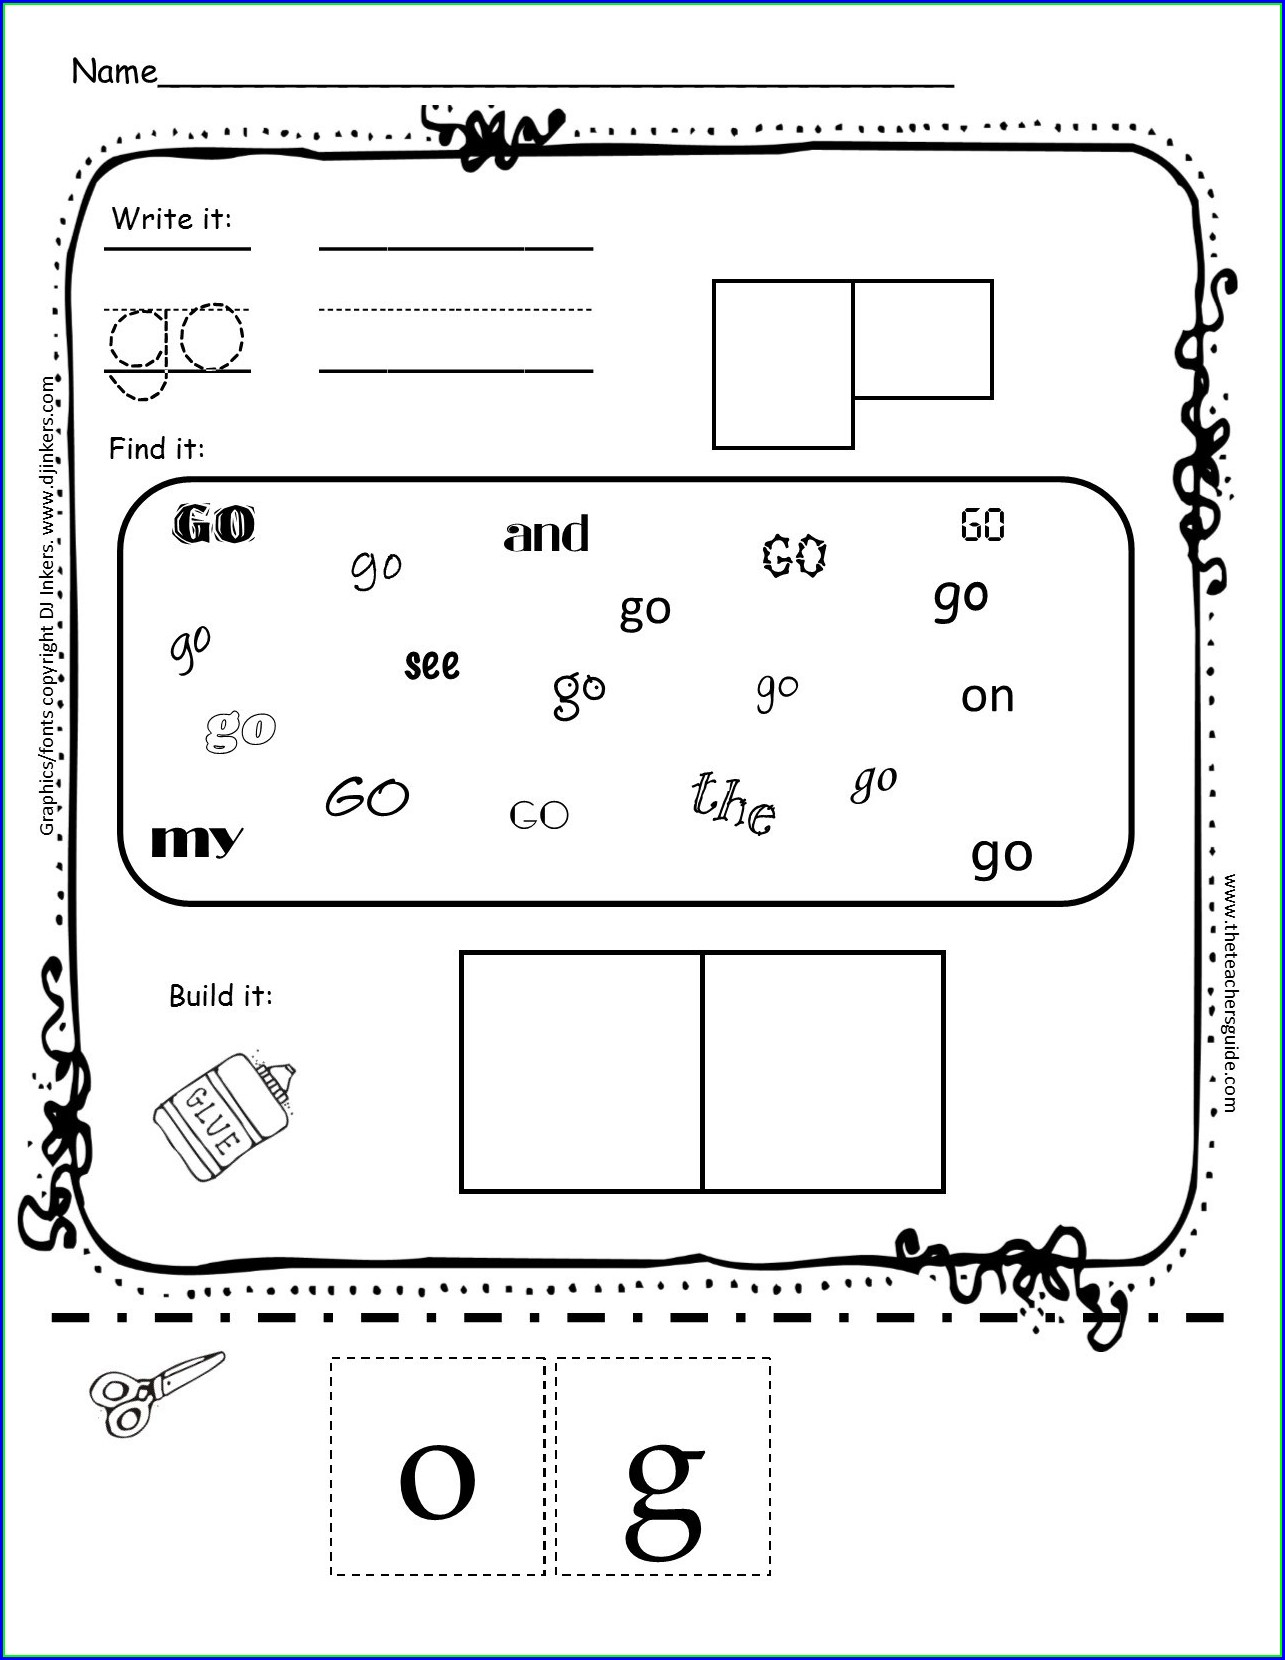 Printable Sight Word We Worksheet